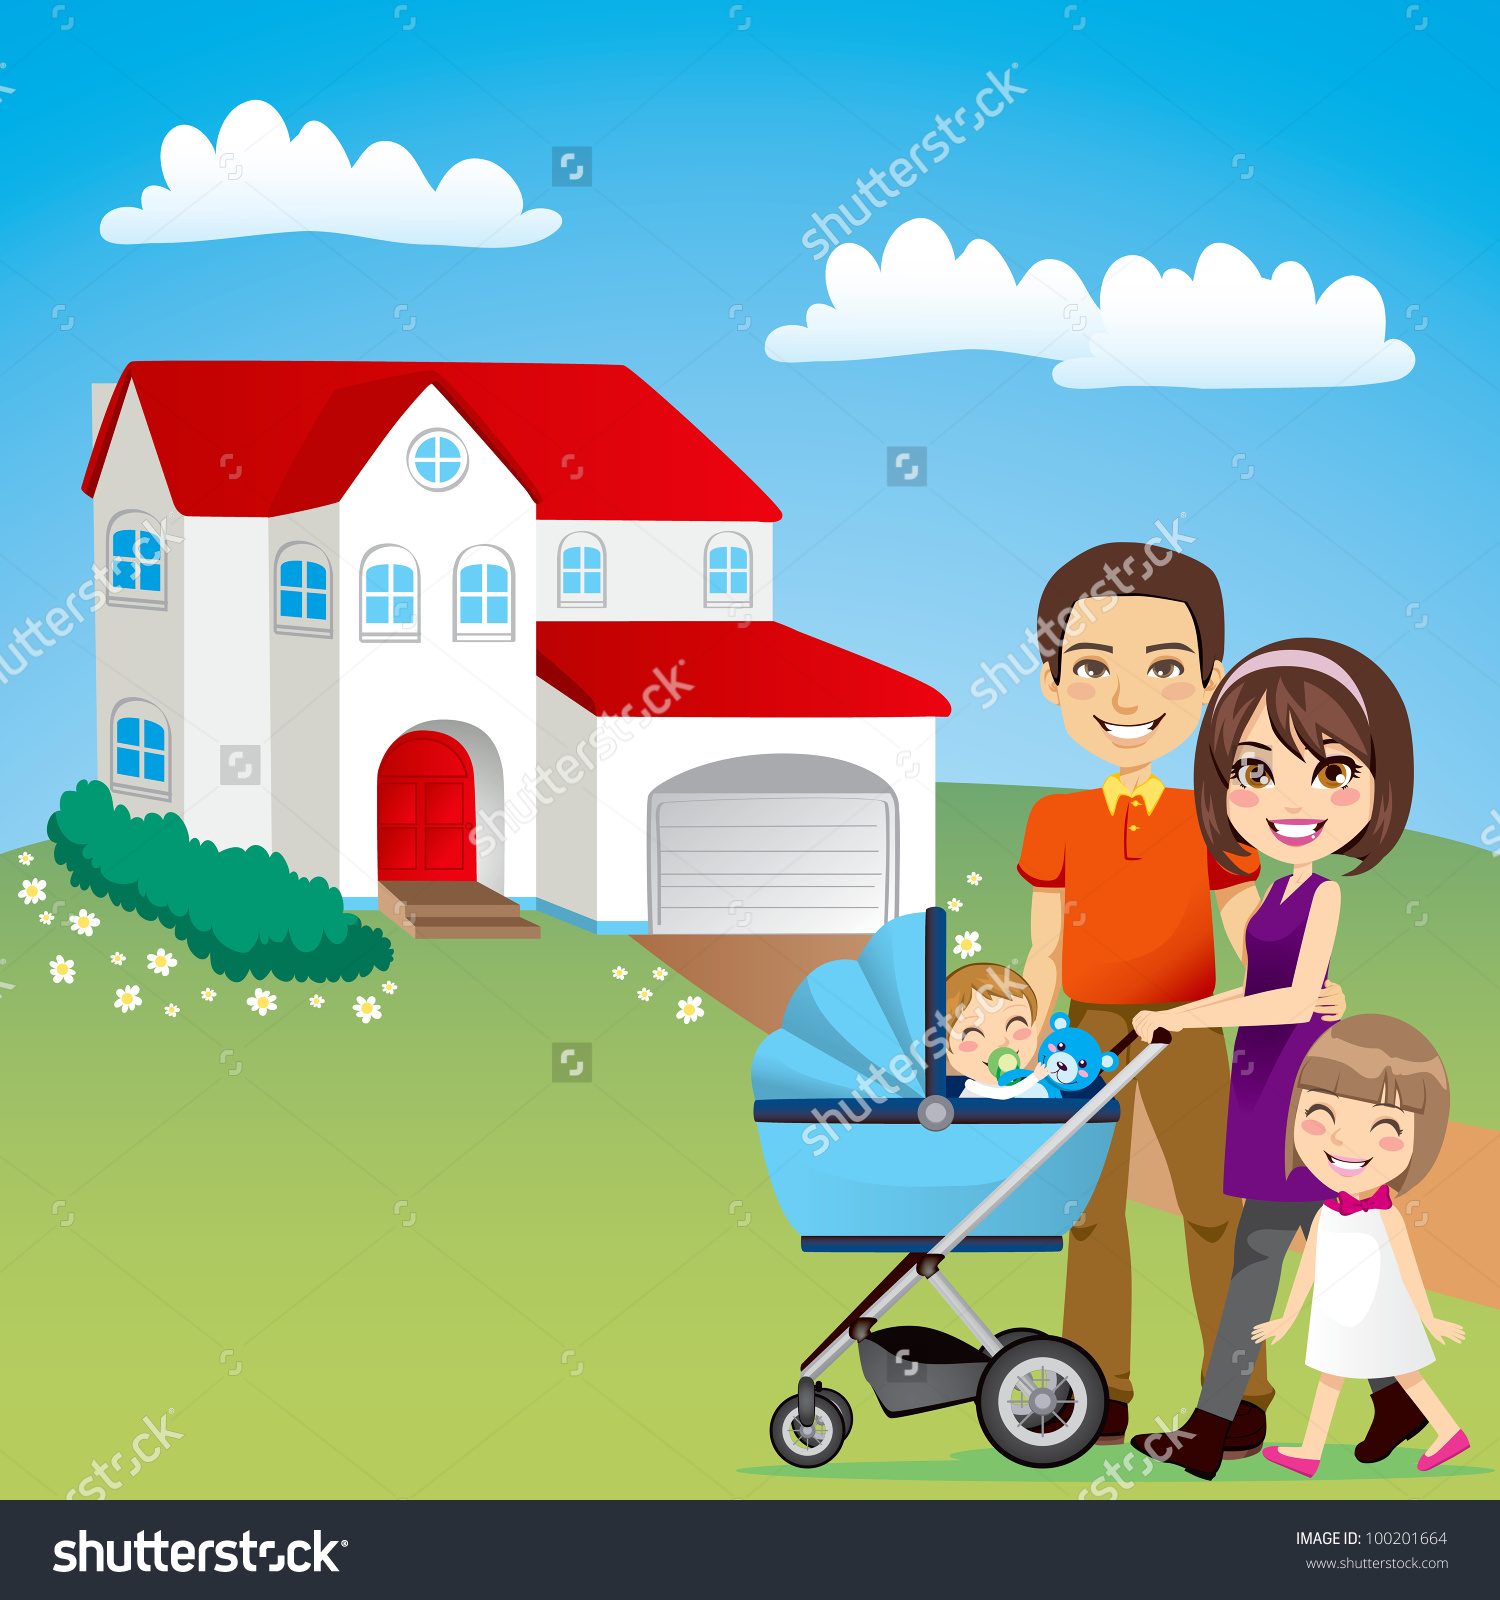 Family in car home clipart.